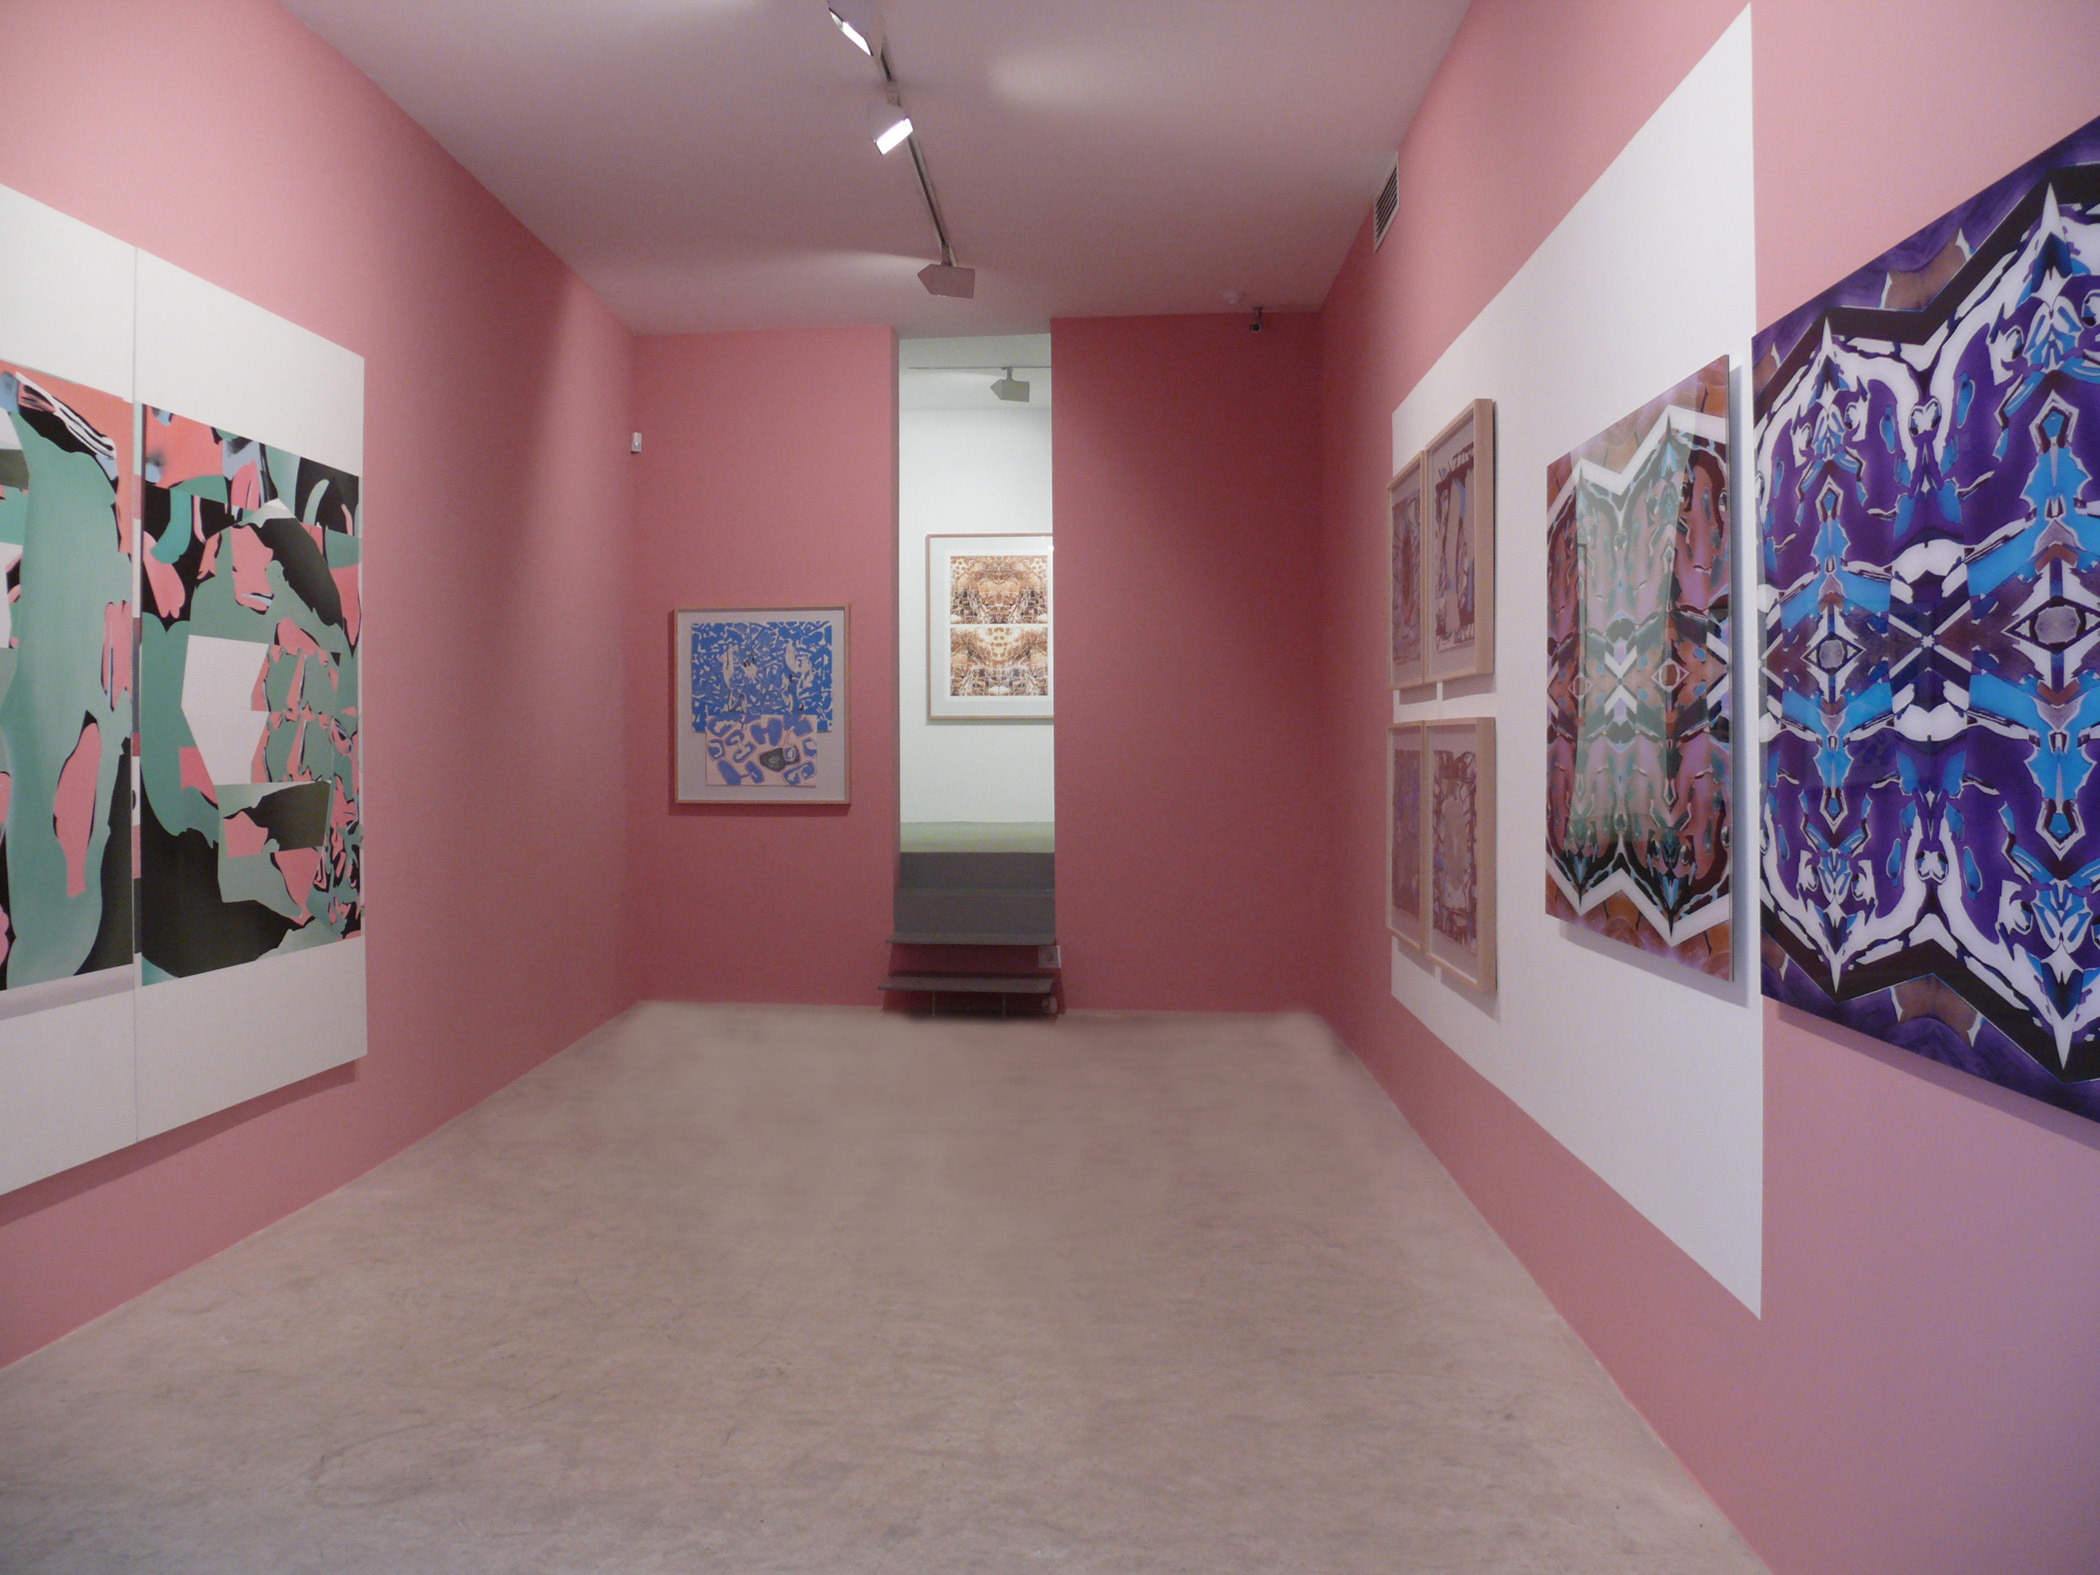 Exhibition view from Luis Gordillo, 2007